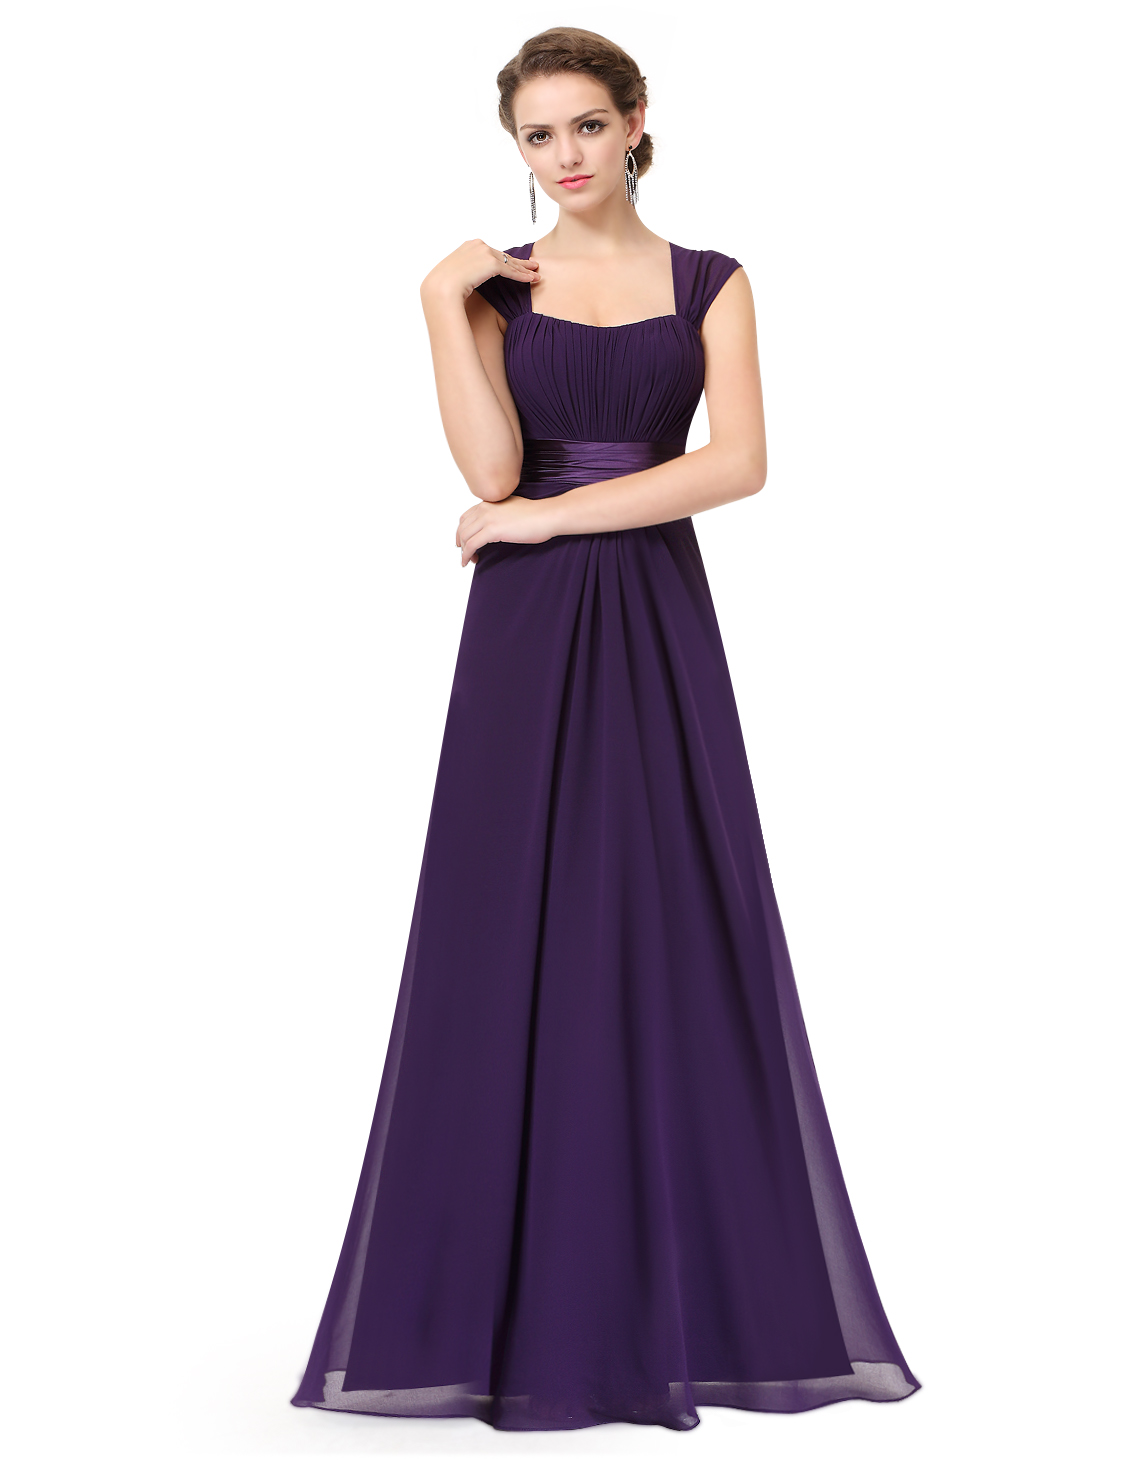 New long chiffon wedding formal evening party ball gown for Pretty ball gown wedding dresses